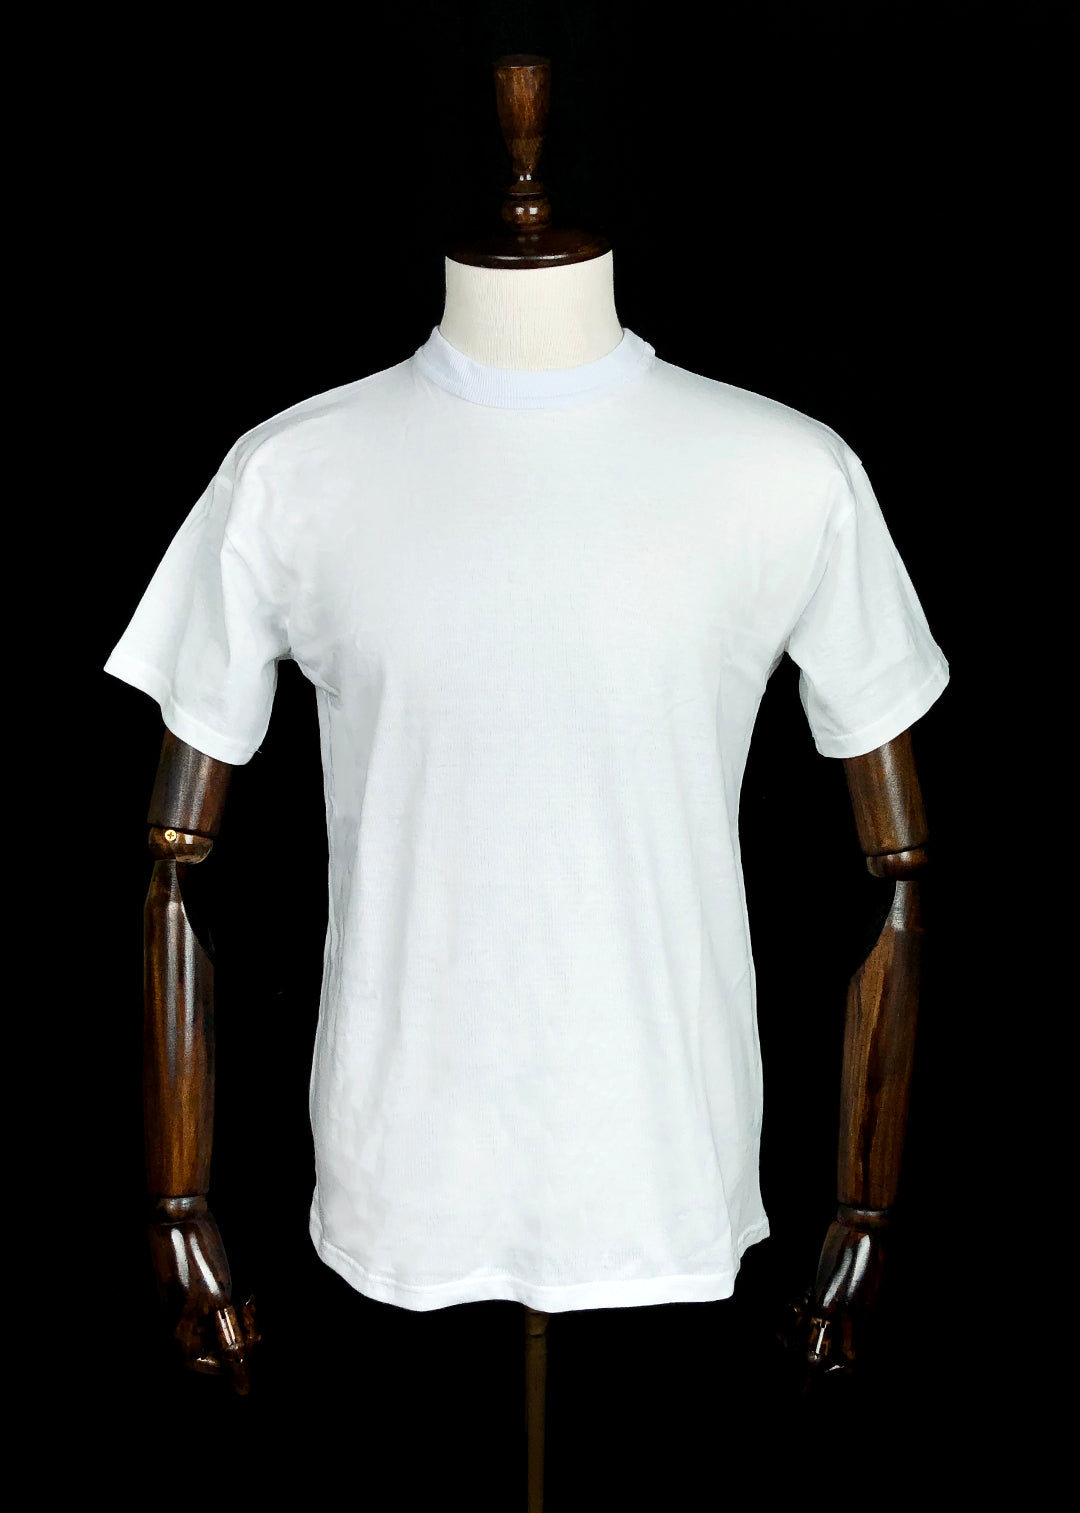 Basic T-shirt. White